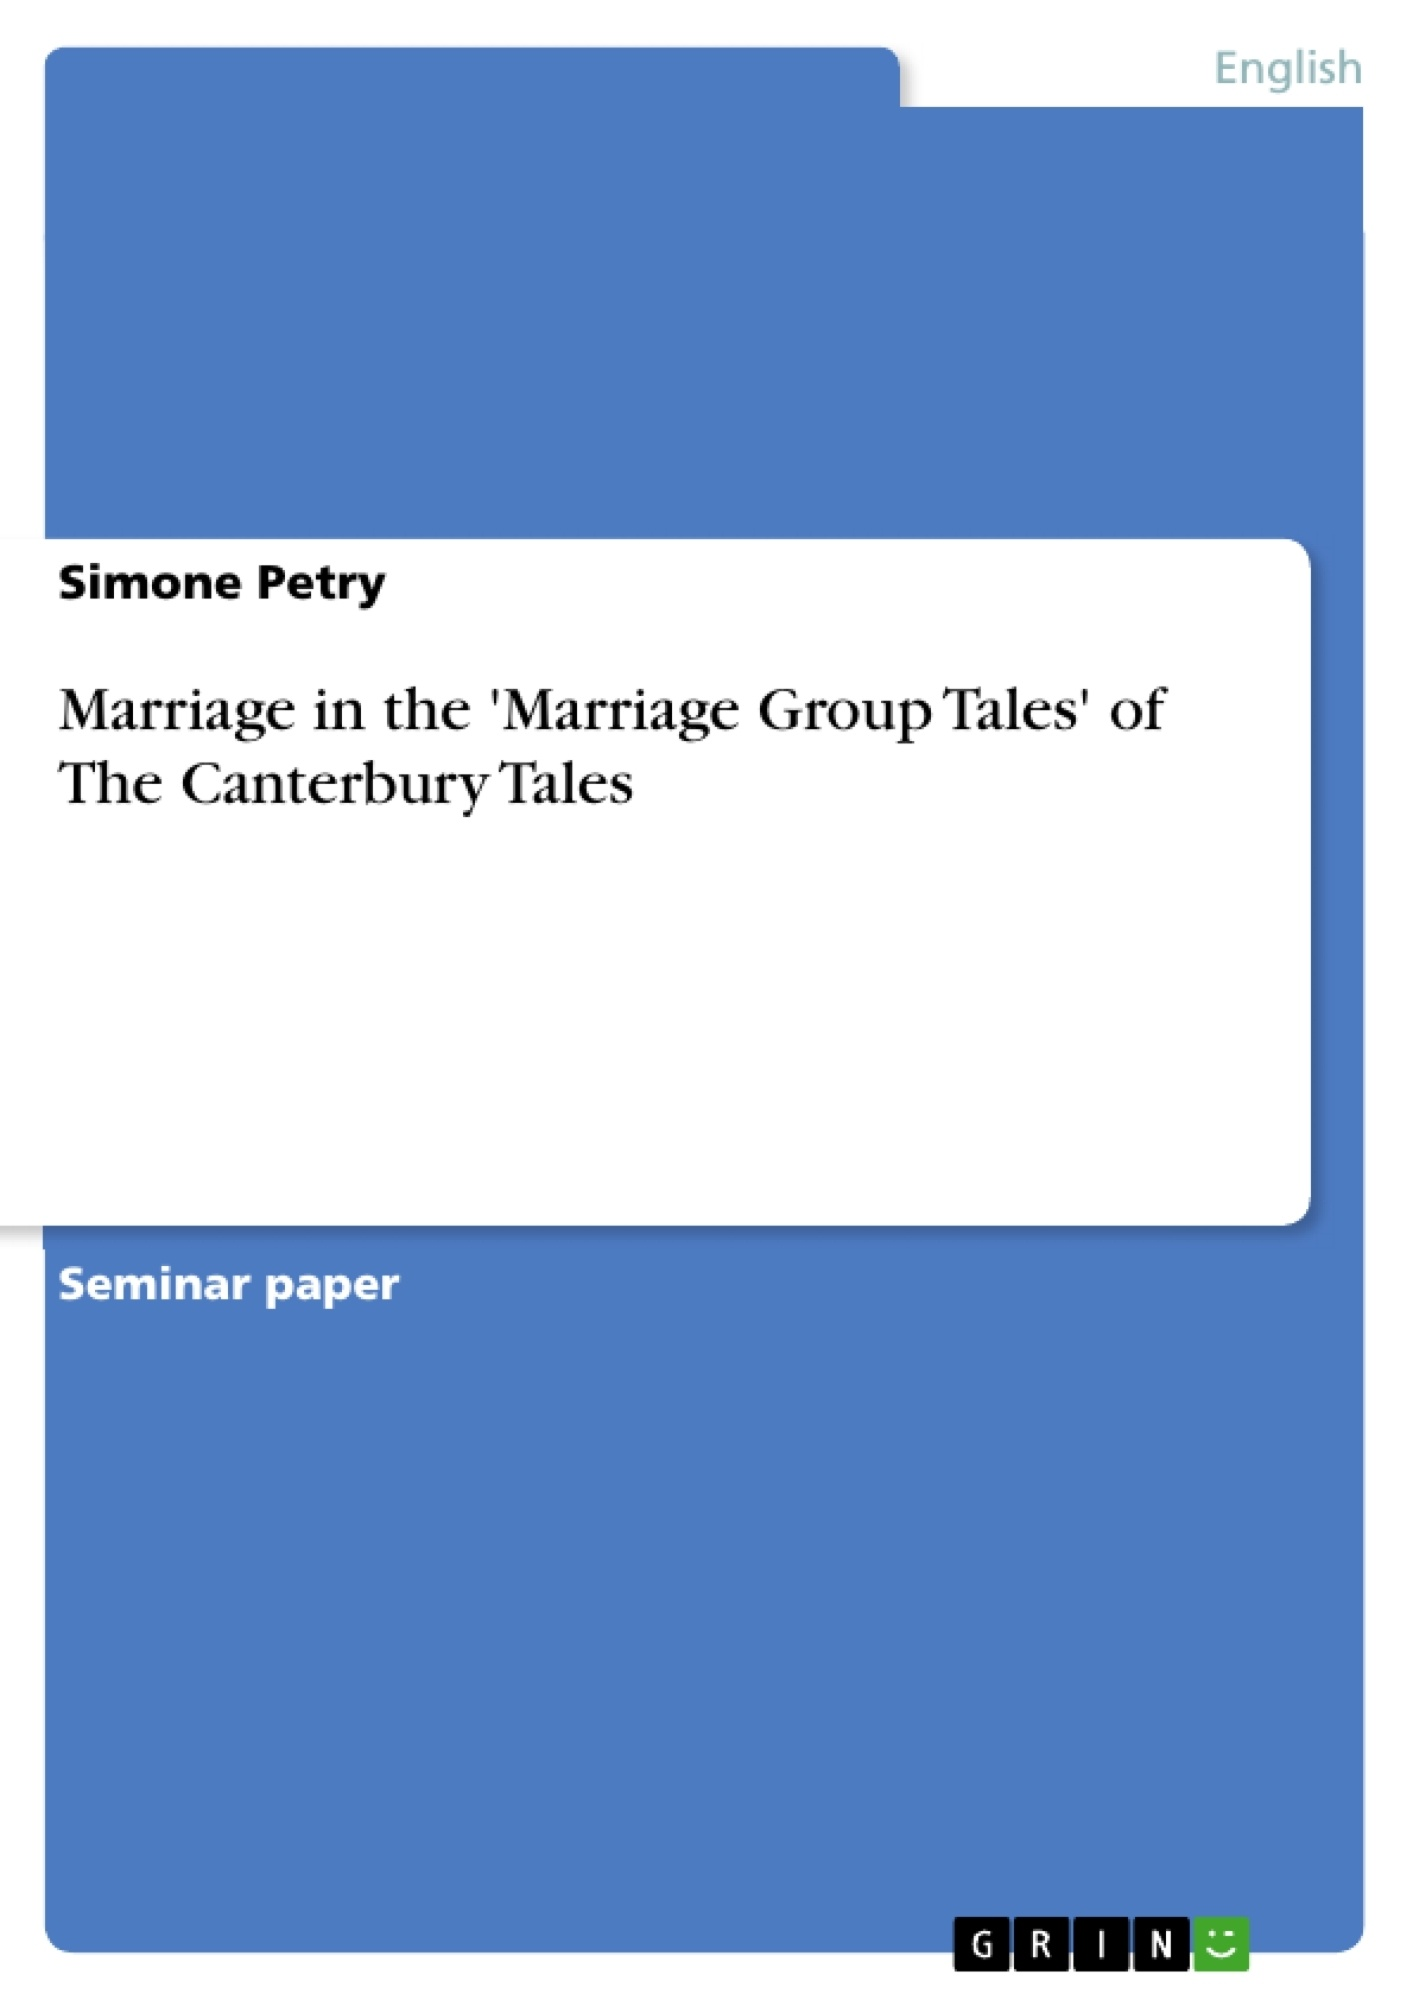 marriage in the marriage group tales of the canterbury tales upload your own papers earn money and win an iphone 7